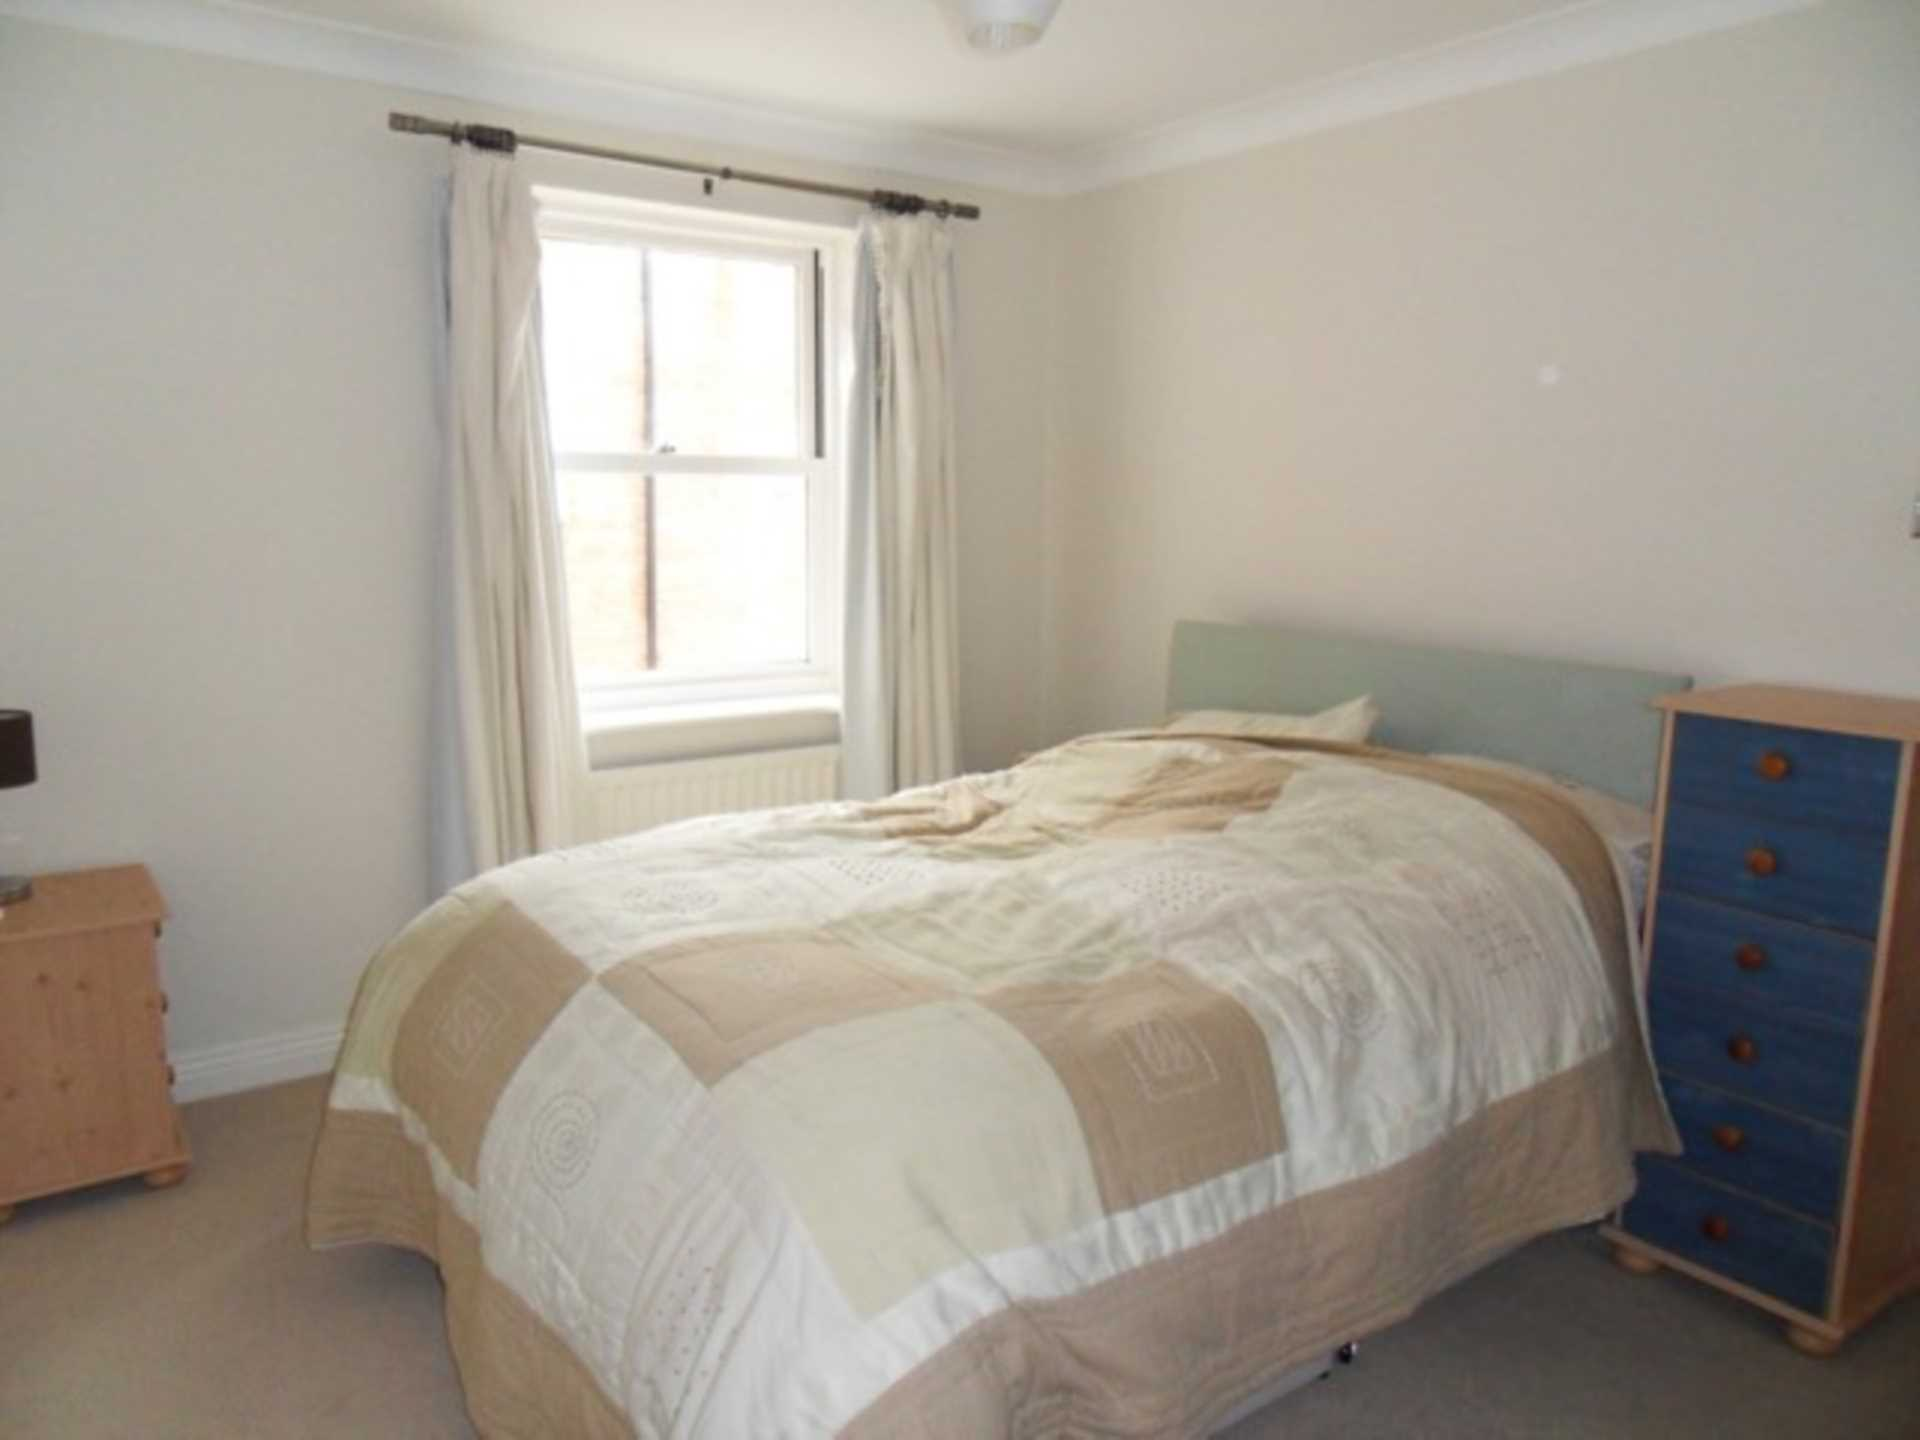 2 bed flat to rent in The Orkneys, Blandford Forum, Blandford Forum 4